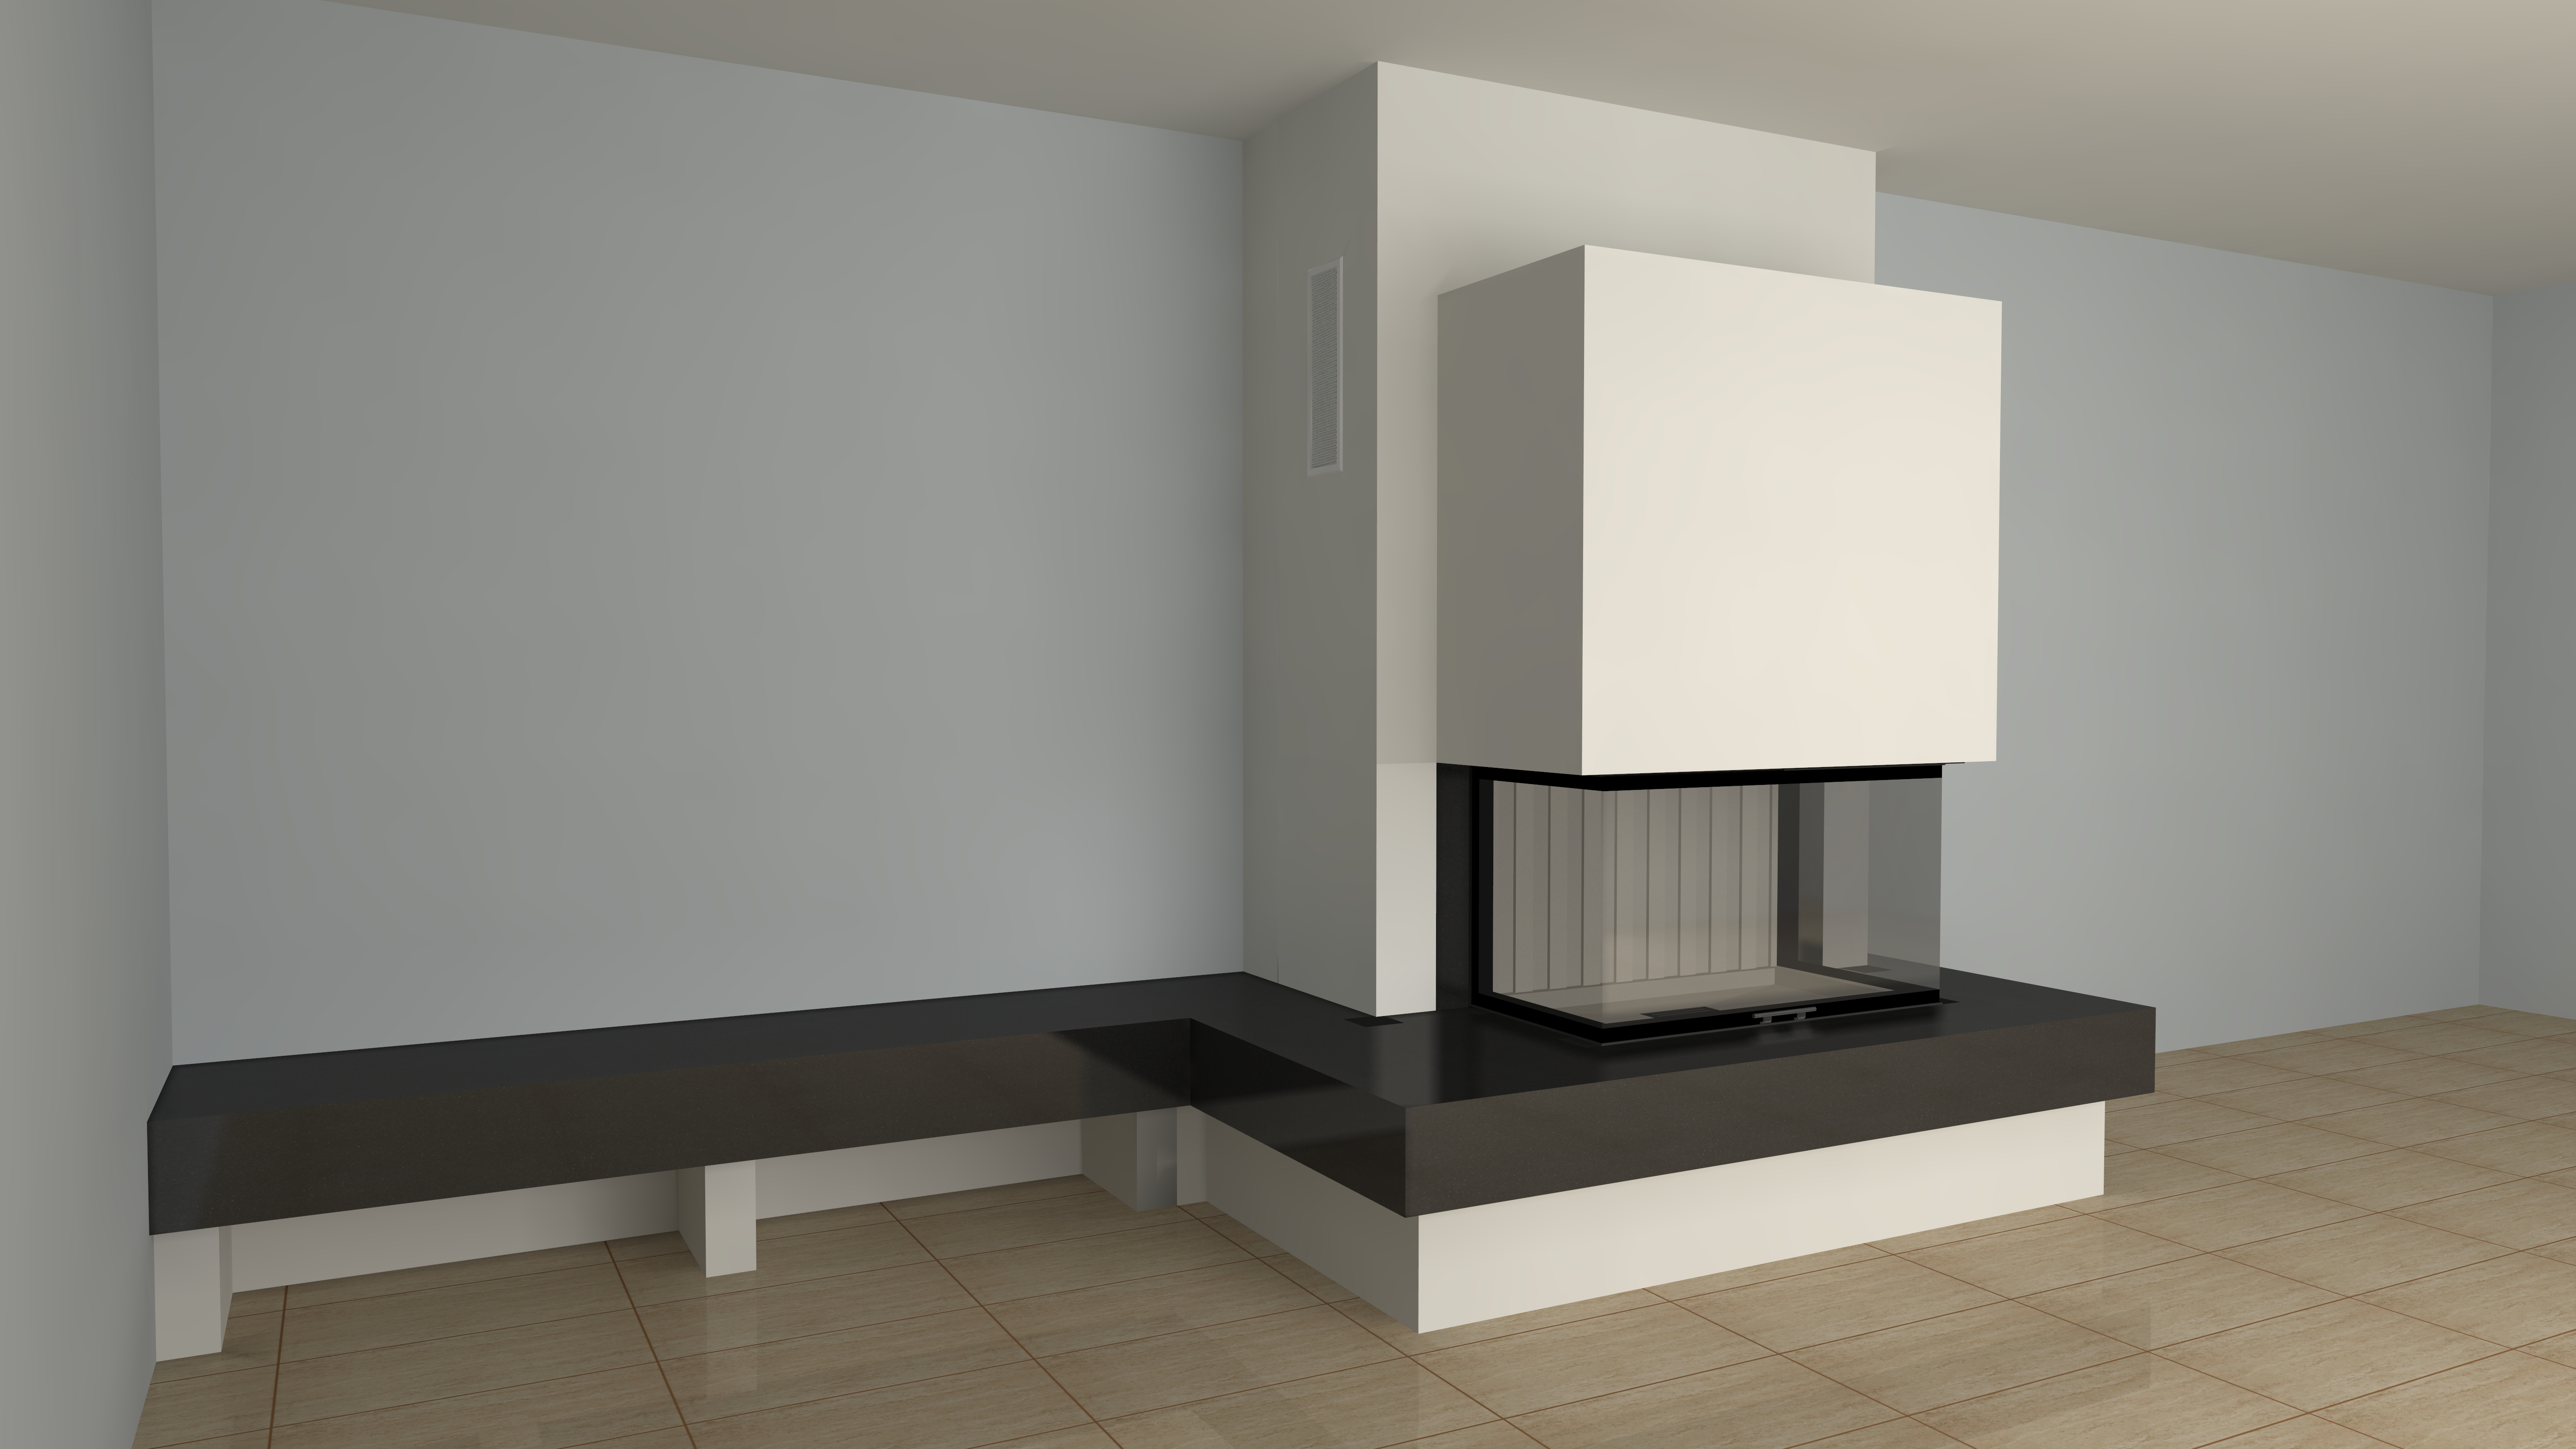 dreiseitiger kamin a 40 2 mit spartherm mit montage www. Black Bedroom Furniture Sets. Home Design Ideas